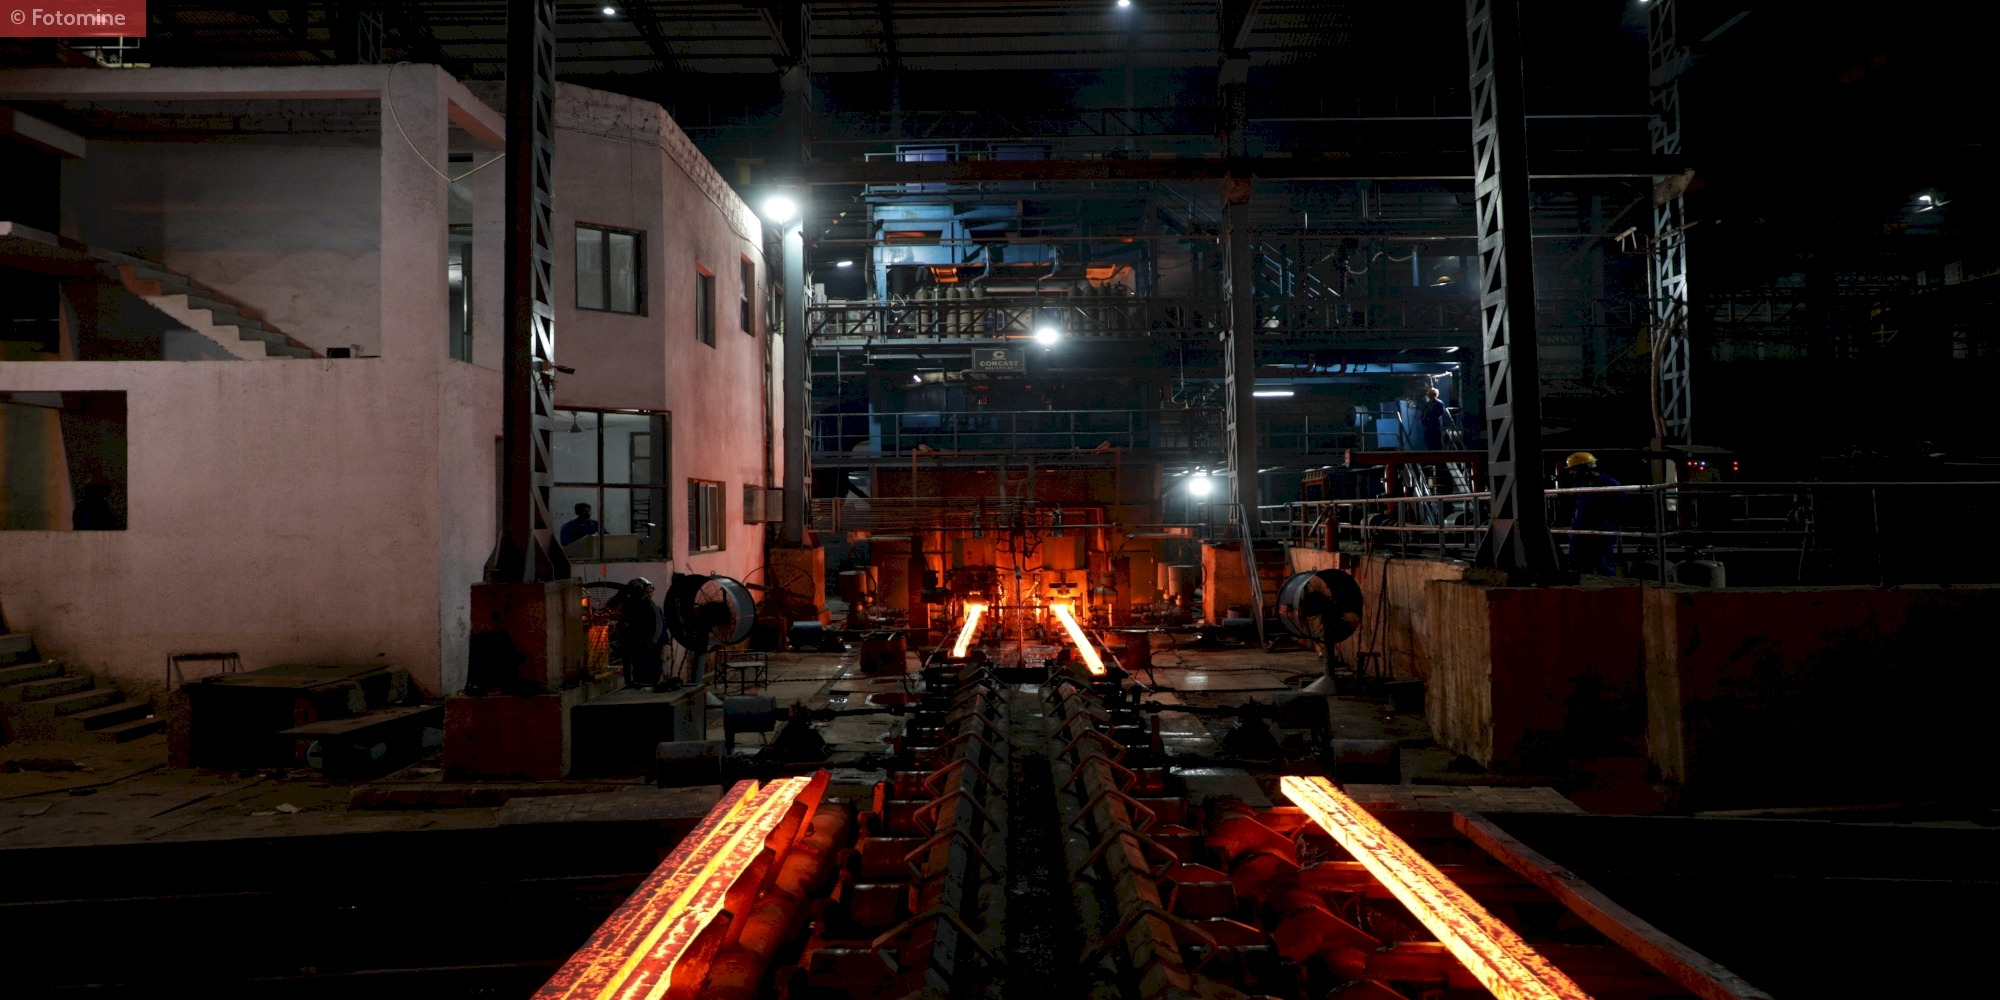 Overview of billet casting & hot charging rolling mill, Haq Steels And Metaliks Ltd, Gujarat